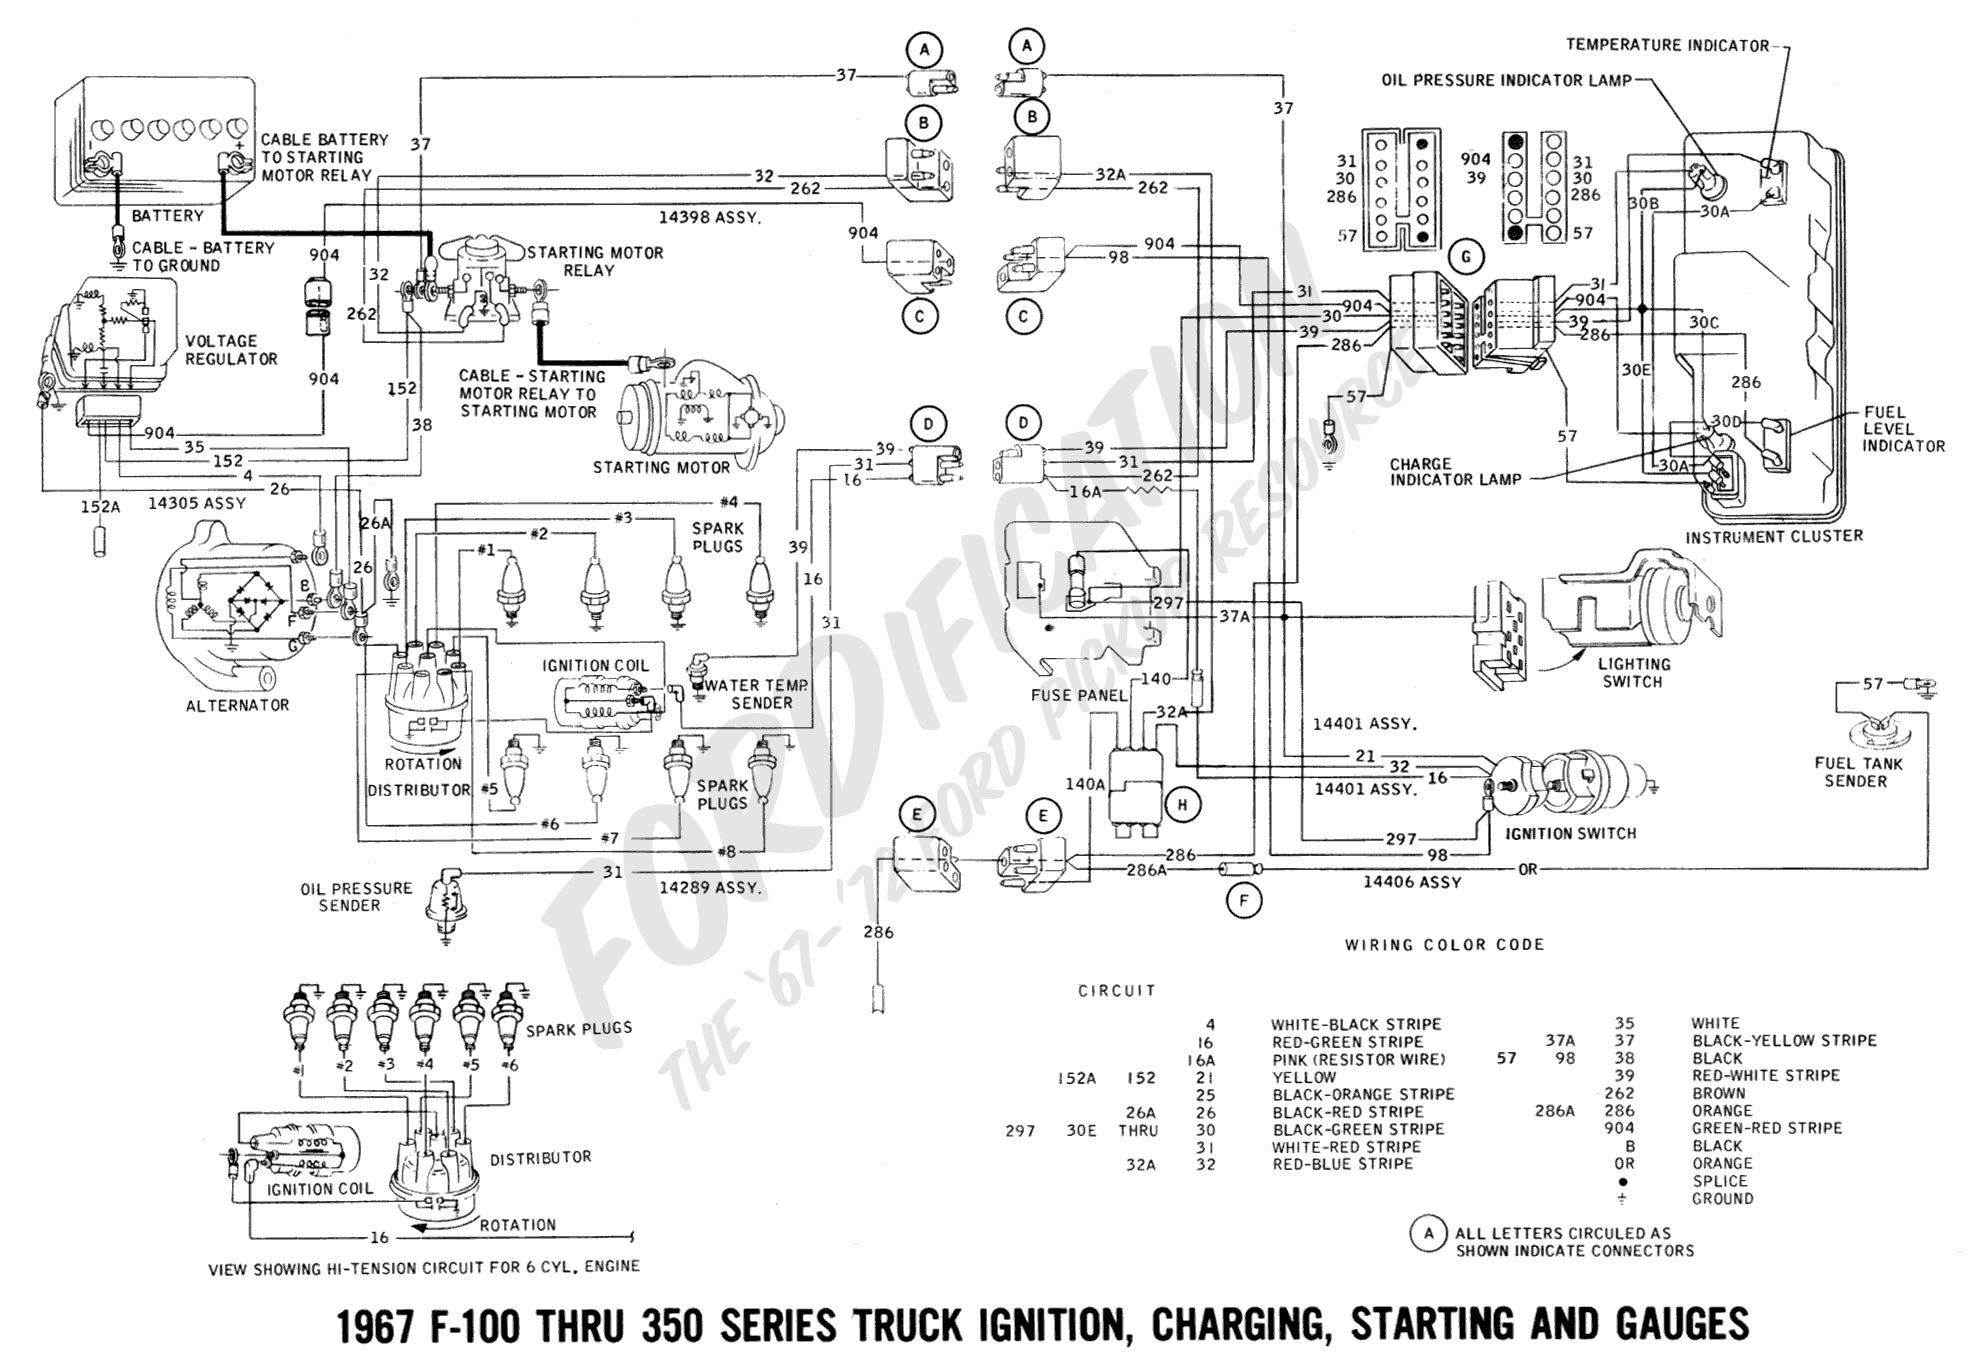 1968 Mustang Dome Light Wiring Diagram For How To Wire A Fuse Box Well Ford